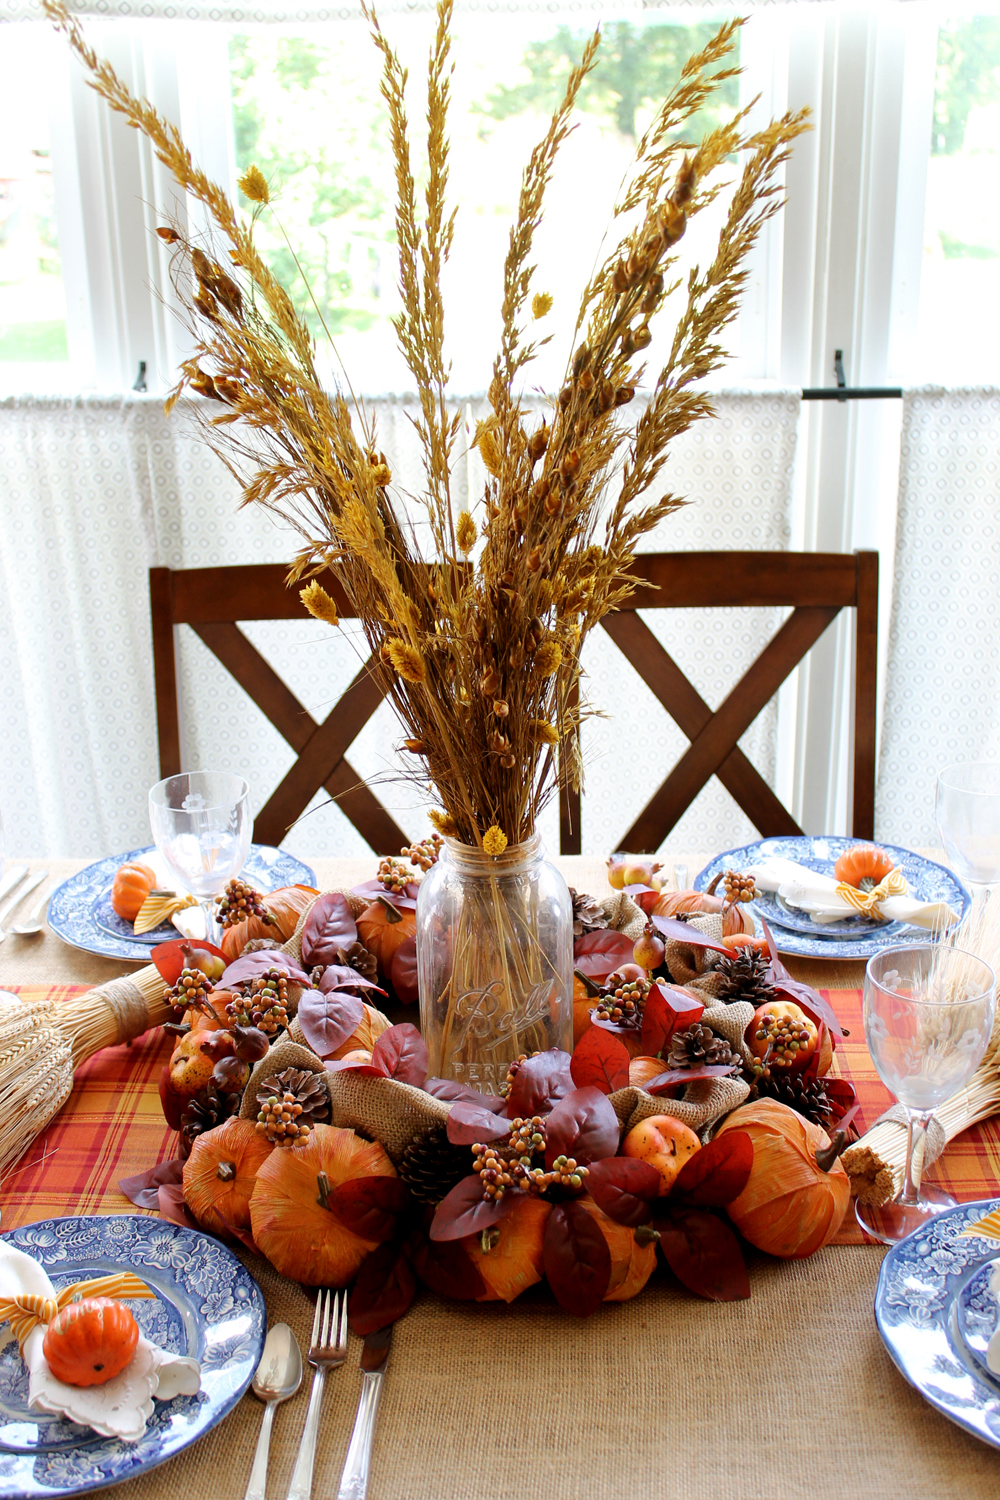 Diy thanksgiving decorations for your table the country Thanksgiving table decorations homemade